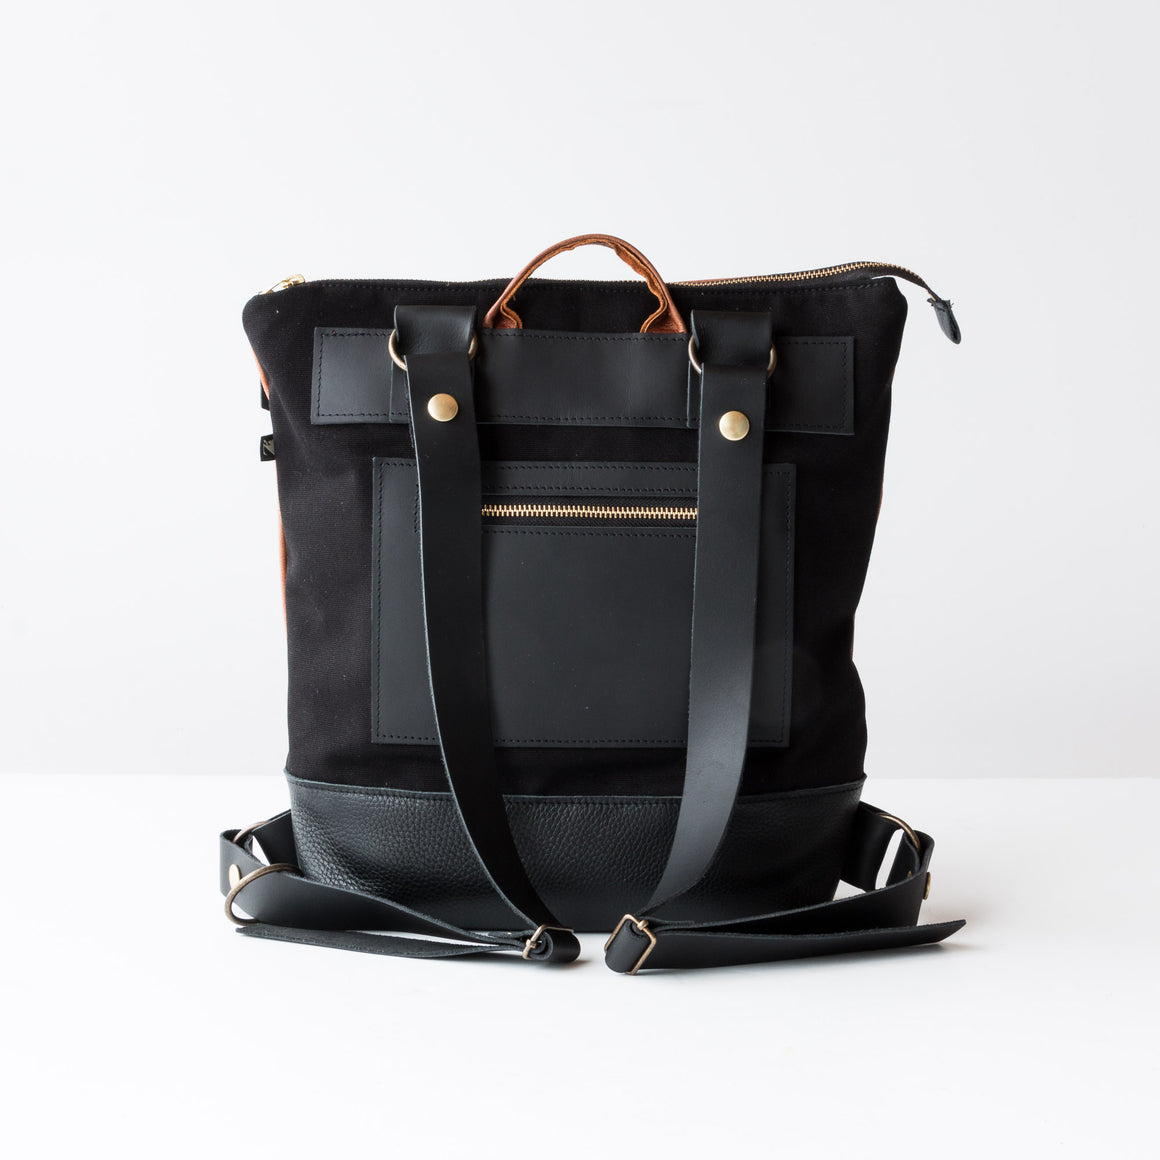 Hobart - Metallic Fishes - Caramel & Black Leather Backpack